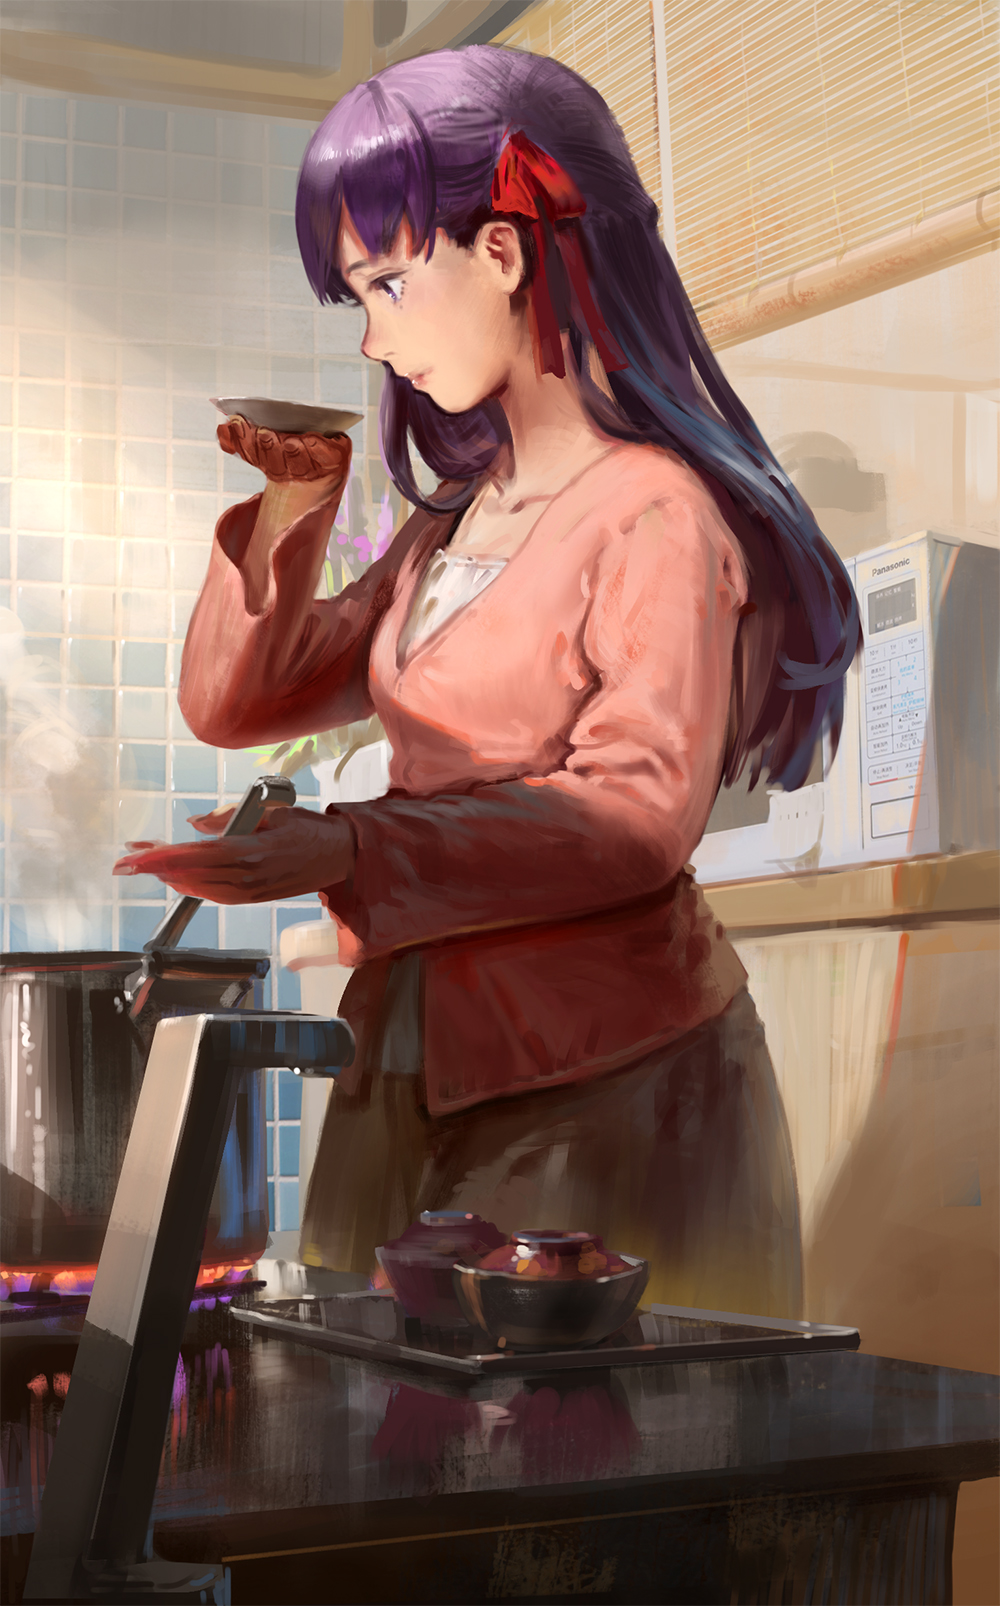 1girl bow casual collarbone commentary cooking dish dutch_angle fate/stay_night fate_(series) hair_bow happy_birthday highres indoors jeanex kitchen long_hair matou_sakura microwave mole mole_under_eye pot profile purple_hair saucer solo steam stove